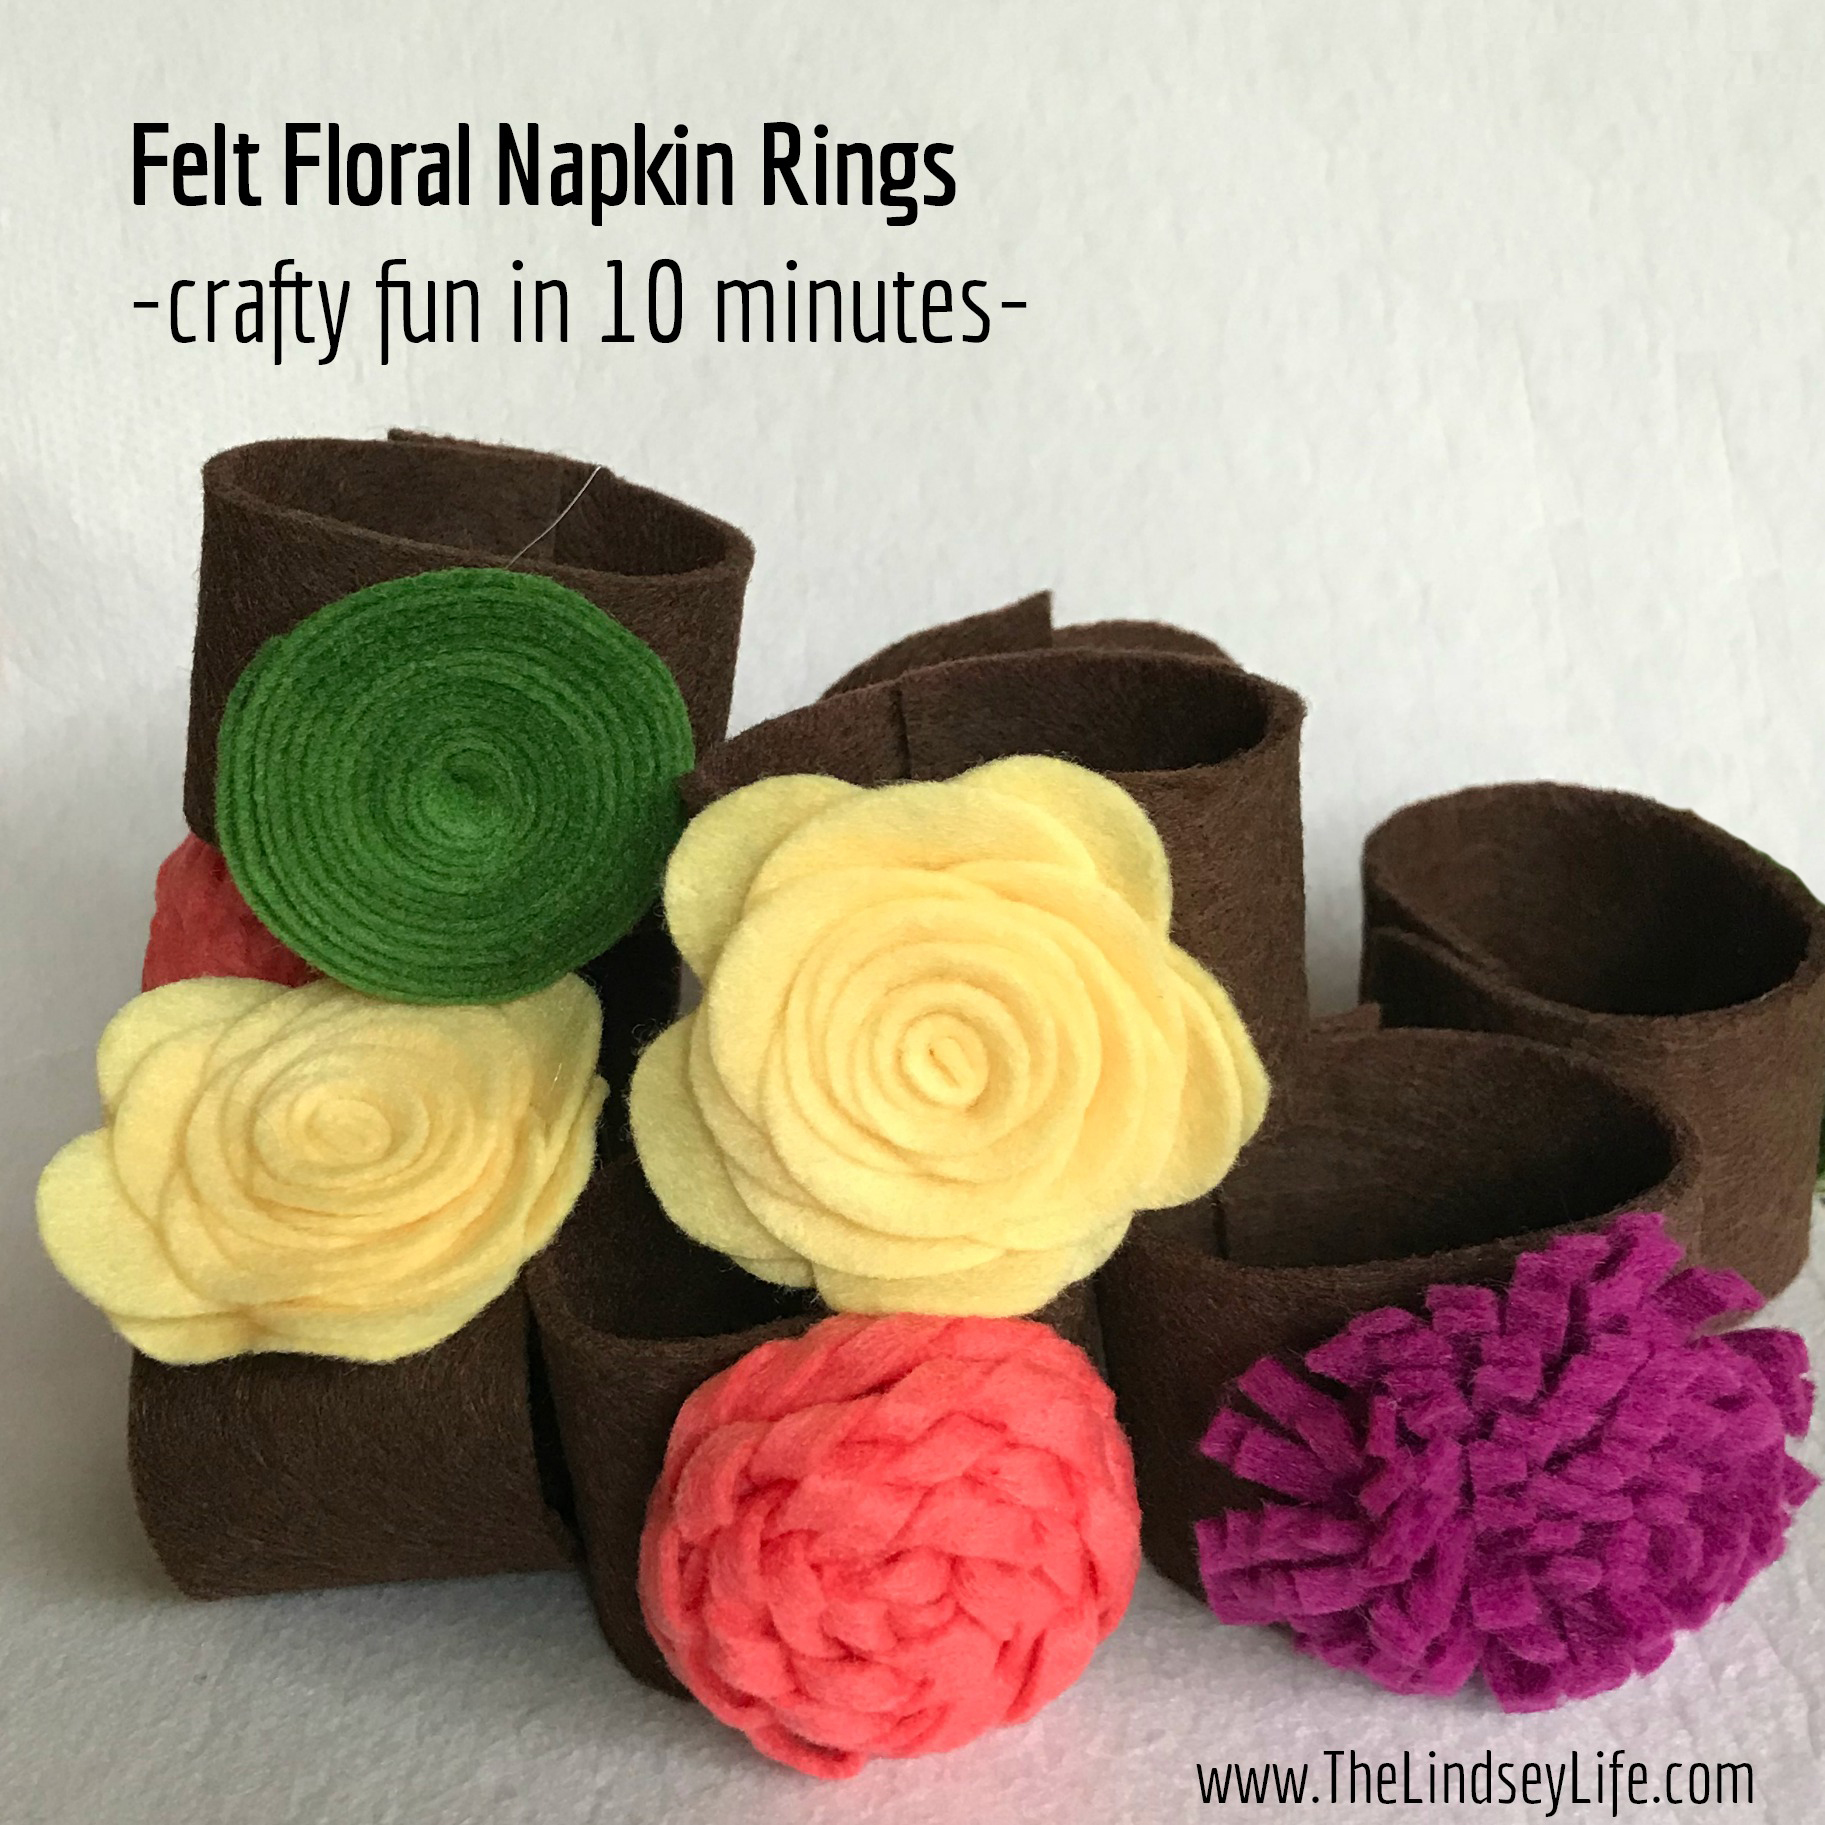 Free Craft Guide: Felt Floral Napkin Rings